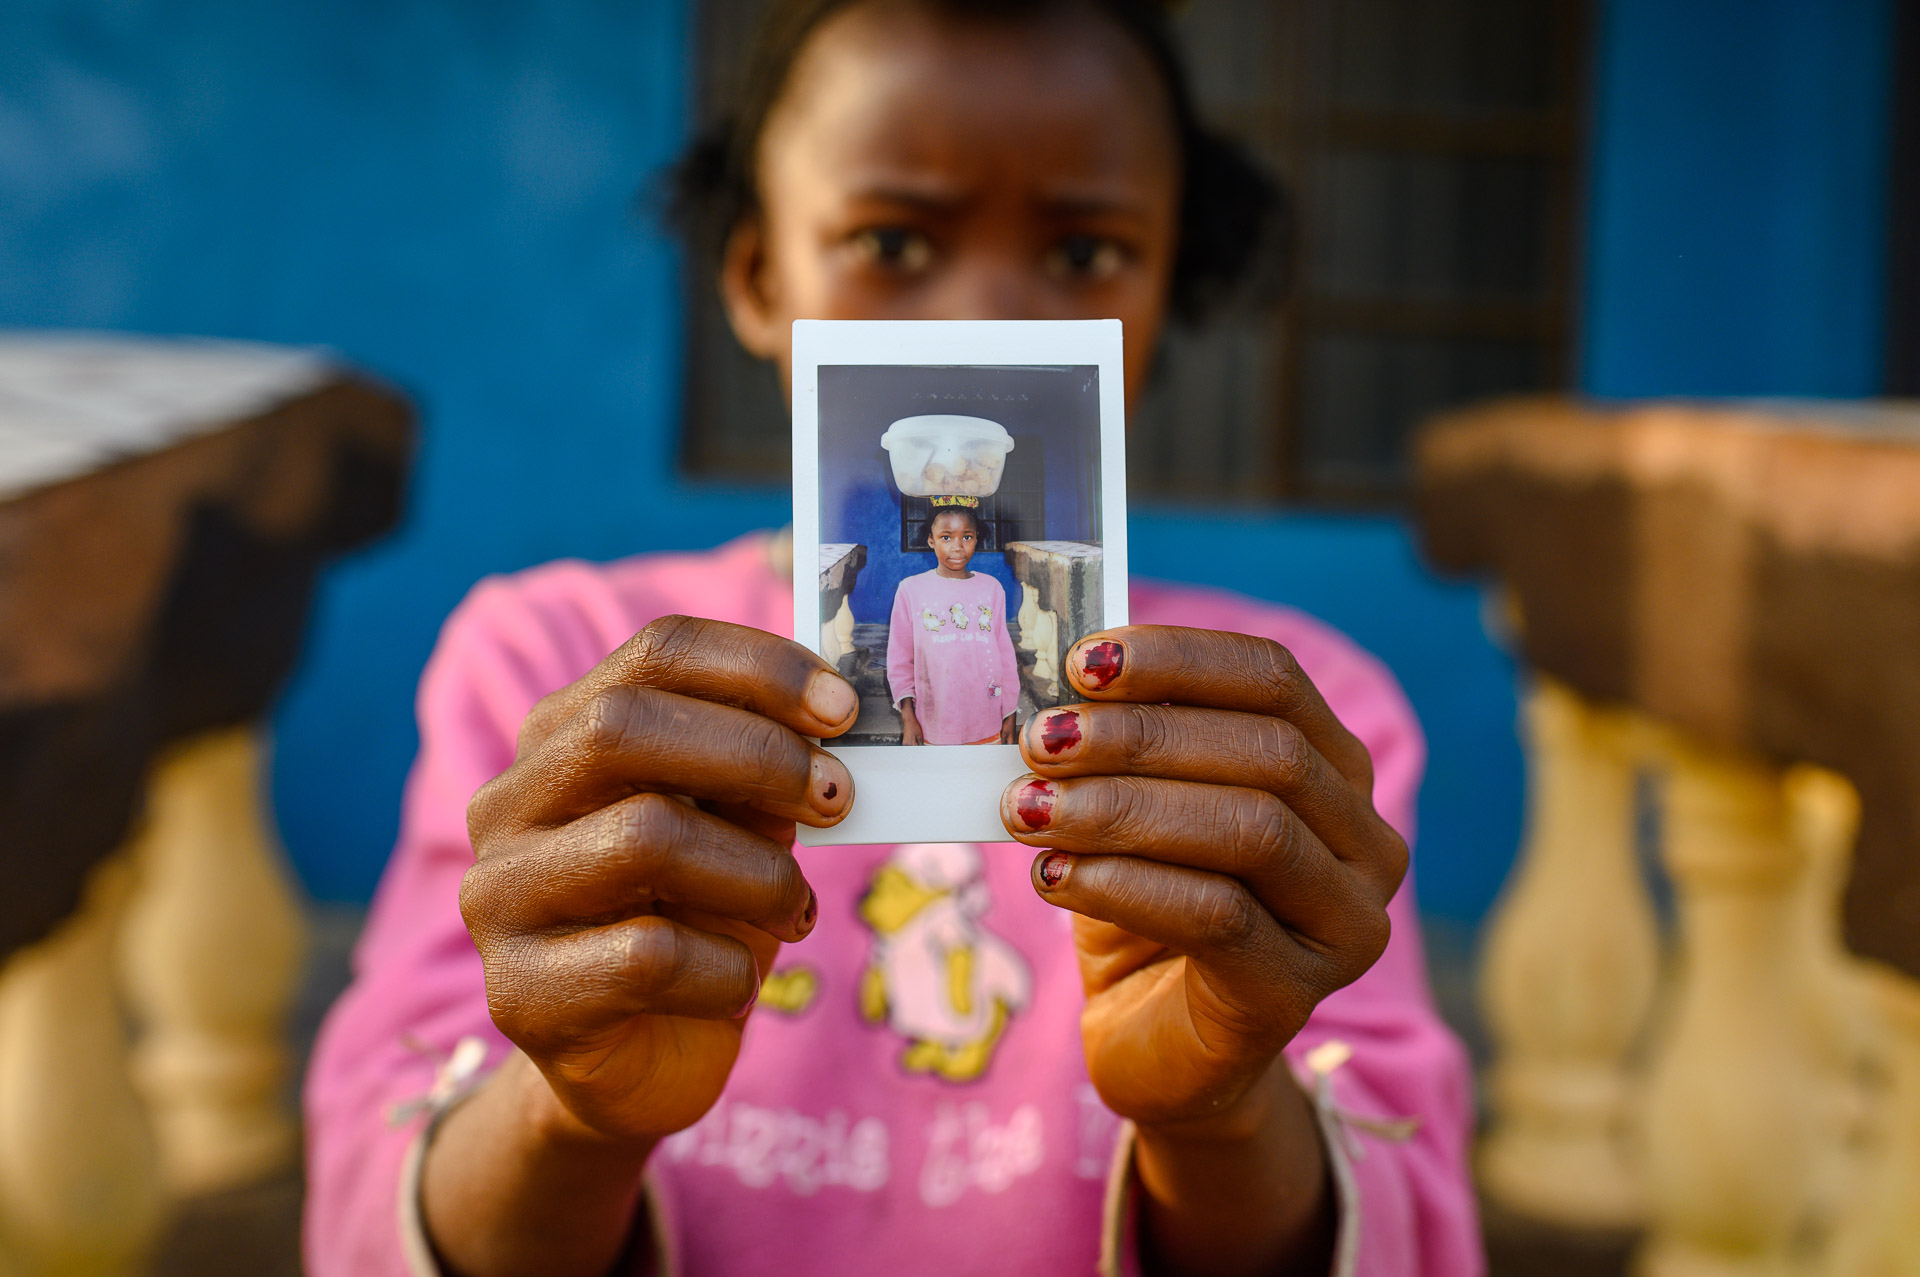 Little girl holding polariod, slowfood international,sierra leone street photography